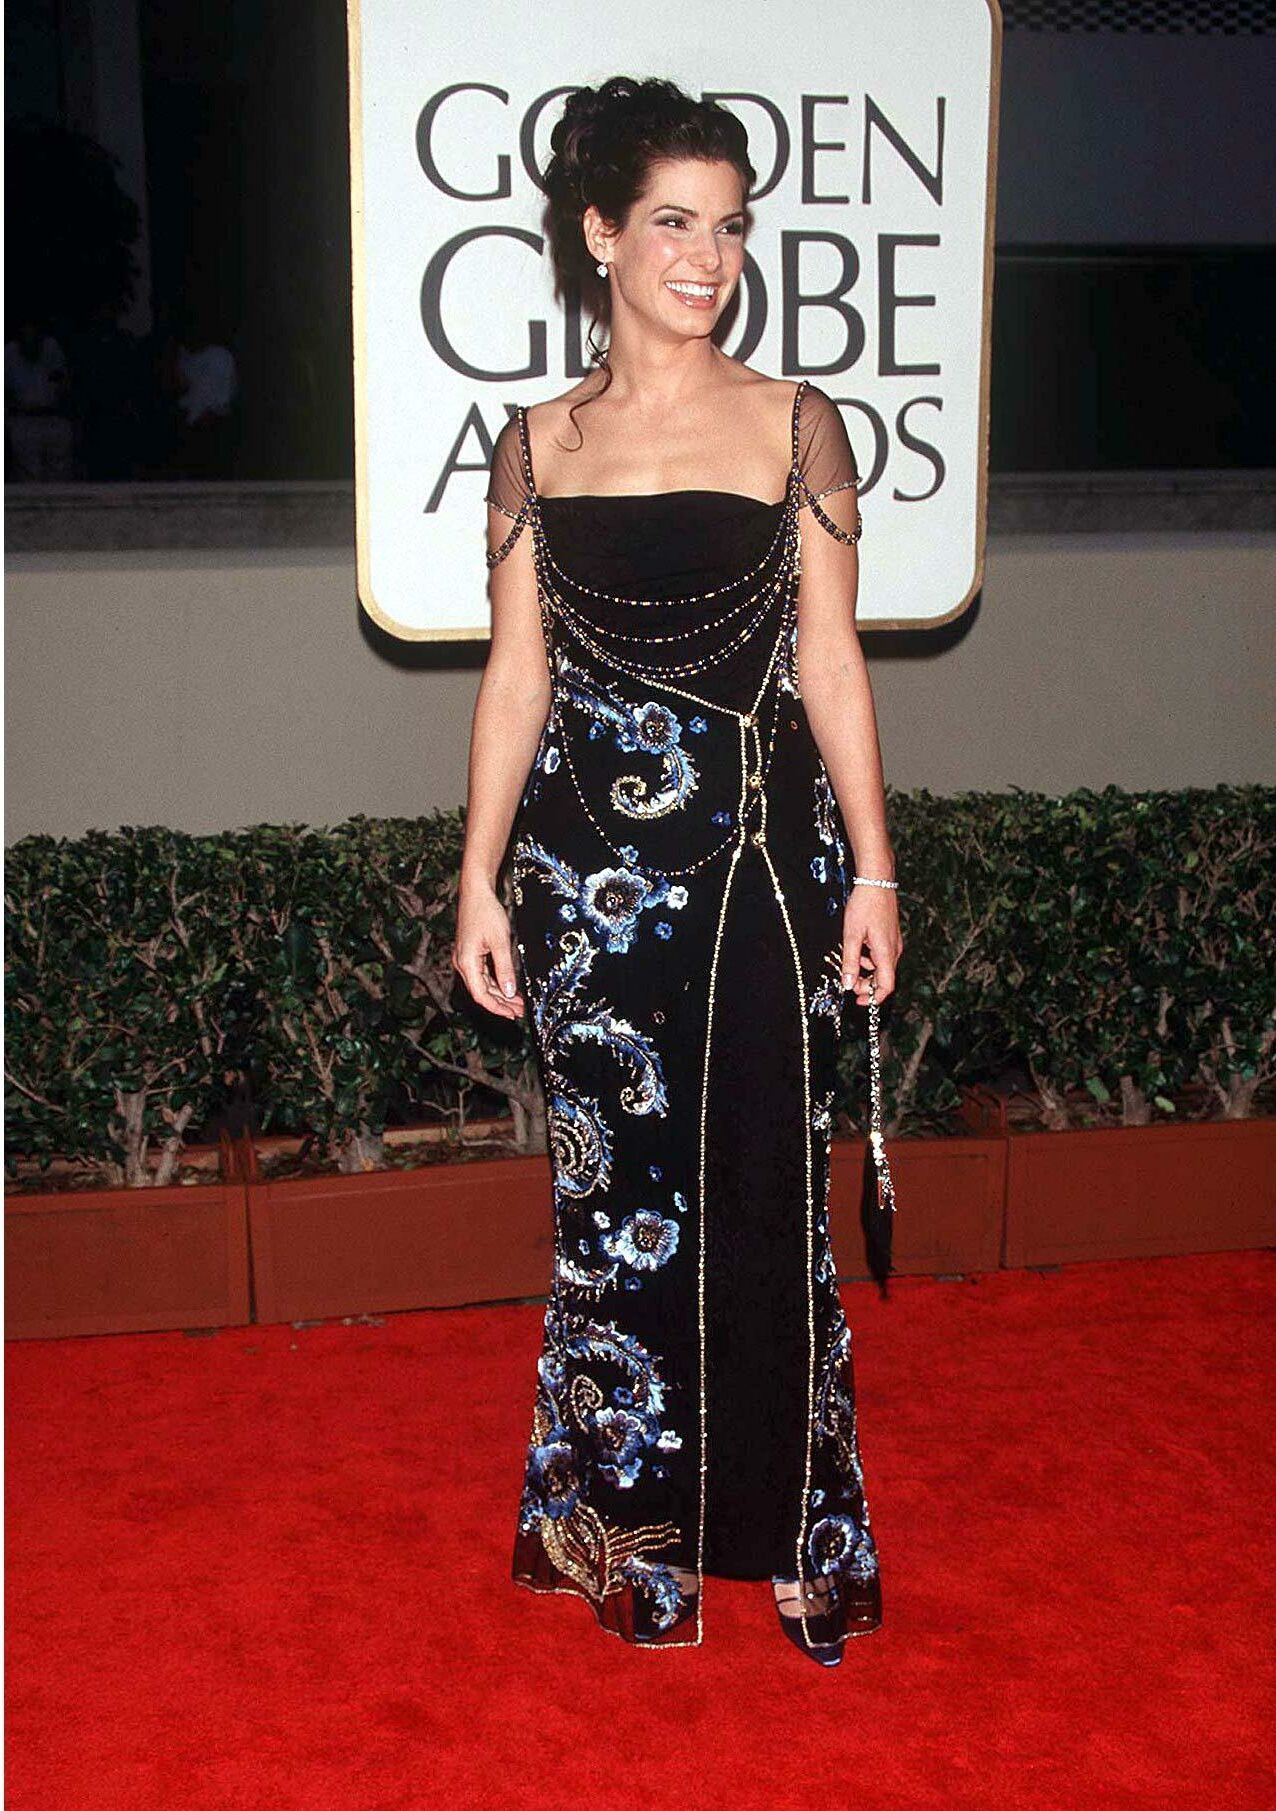 Sandra Bullock arrives at the 55th annual Golden Globe Awards in Beverly Hills on Jan. 18, 1998.